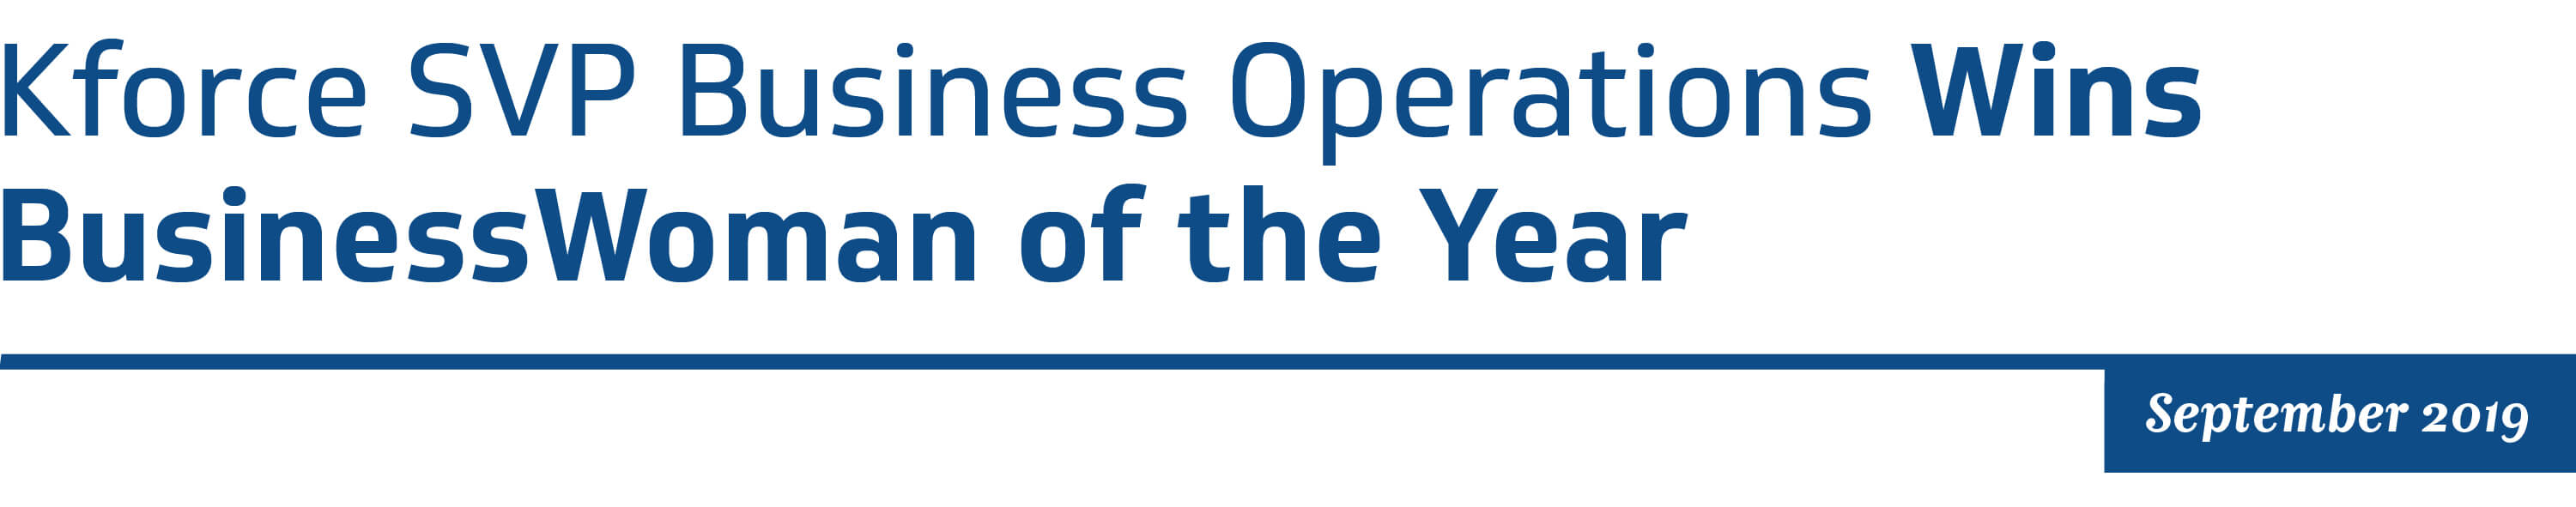 Kforce SVP Business Operations Wins BusinessWoman of the Year